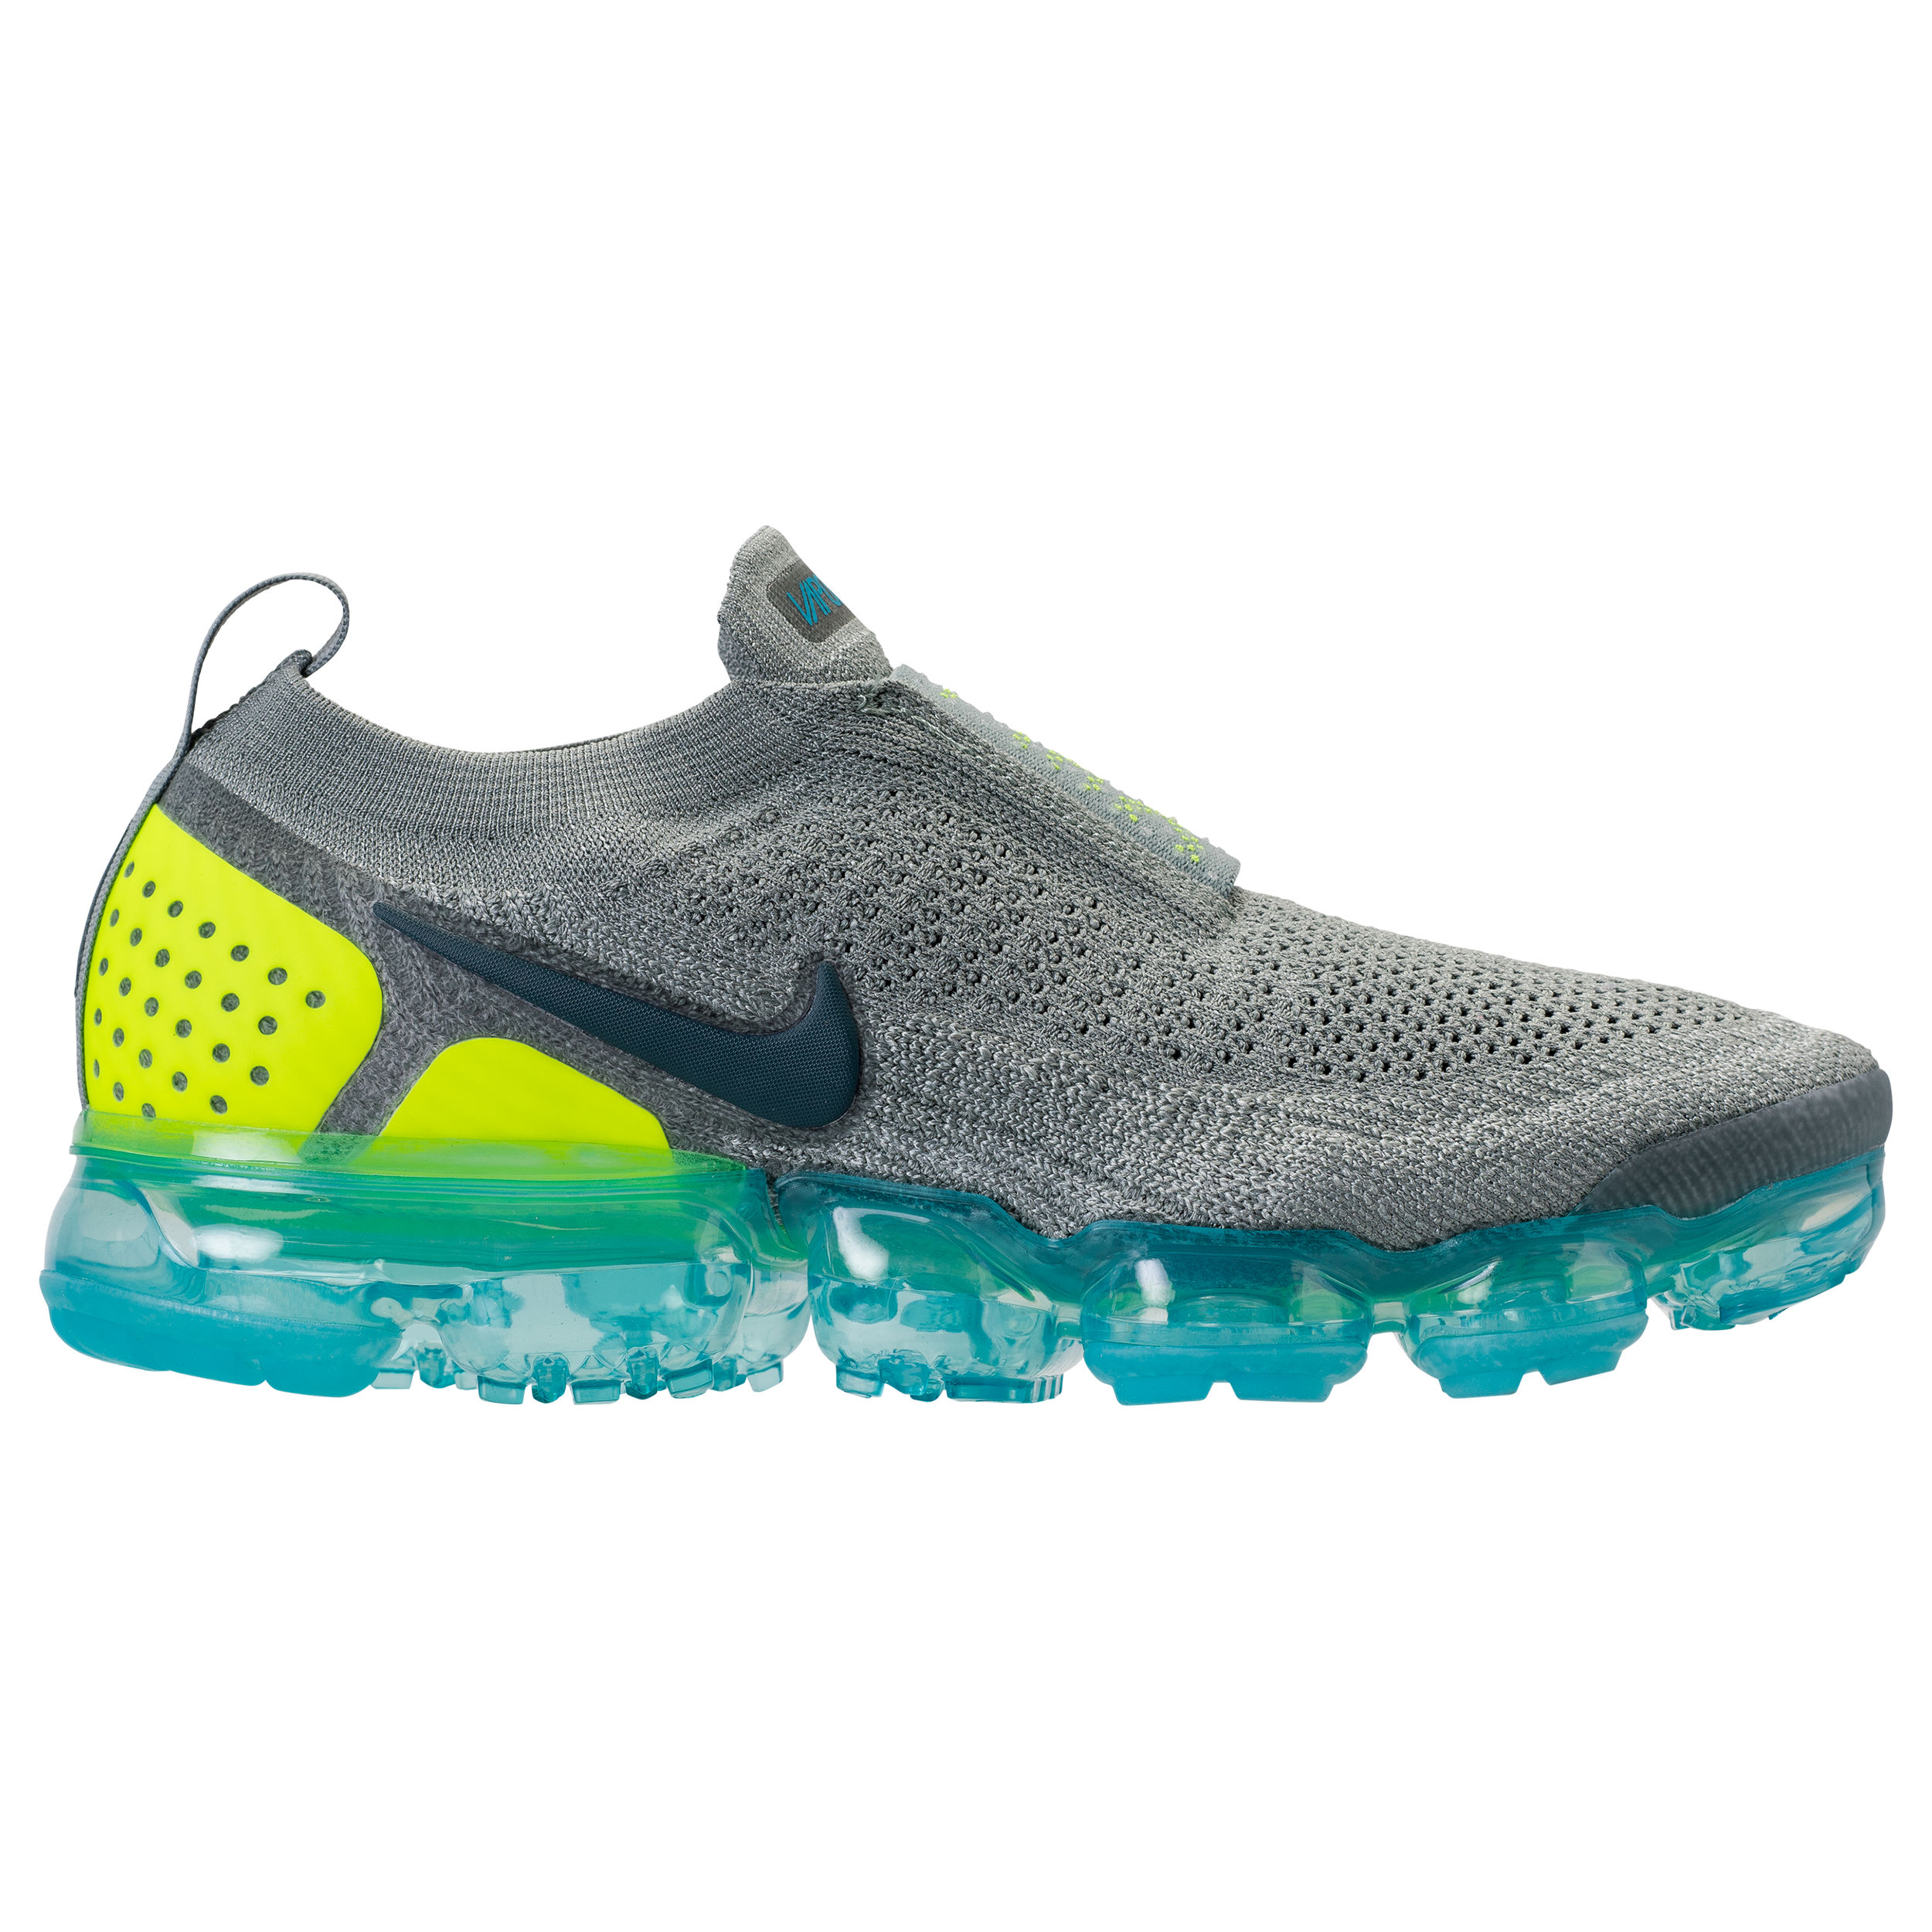 21aef341b0 The Nike Air VaporMax Flyknit Moc 2 Will Release in Fluorescent ...